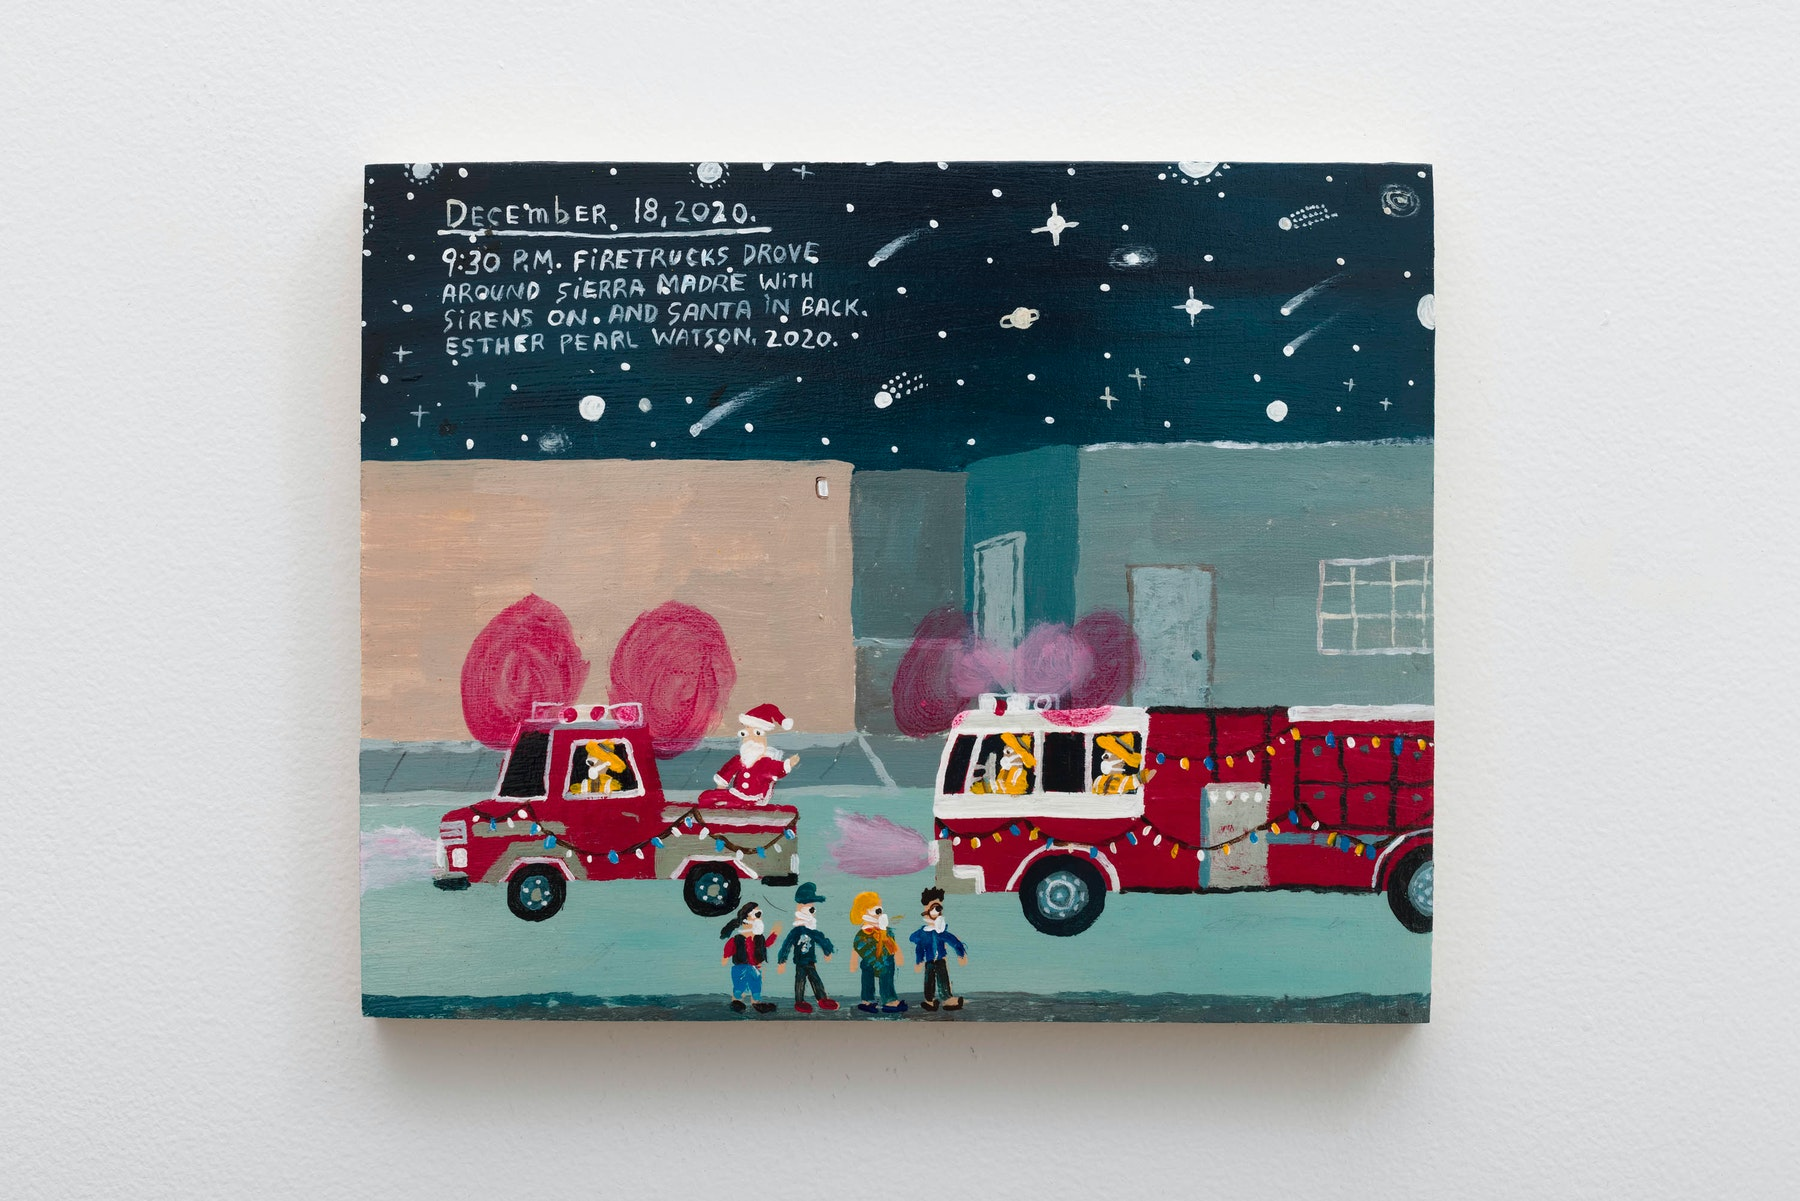 """Esther Pearl Watson """"December 18, Firetrucks Drove Around Sierra Madre,"""" 2020 Acrylic on panel 8"""" x 10"""" x ⁷⁄₈"""" [HxWxD] (20.32 x 25.4 x 2.21 cm) Inventory #EPW395 Courtesy of the artist and Vielmetter Los Angeles Photo credit: Jeff McLane Signed and dated on back"""